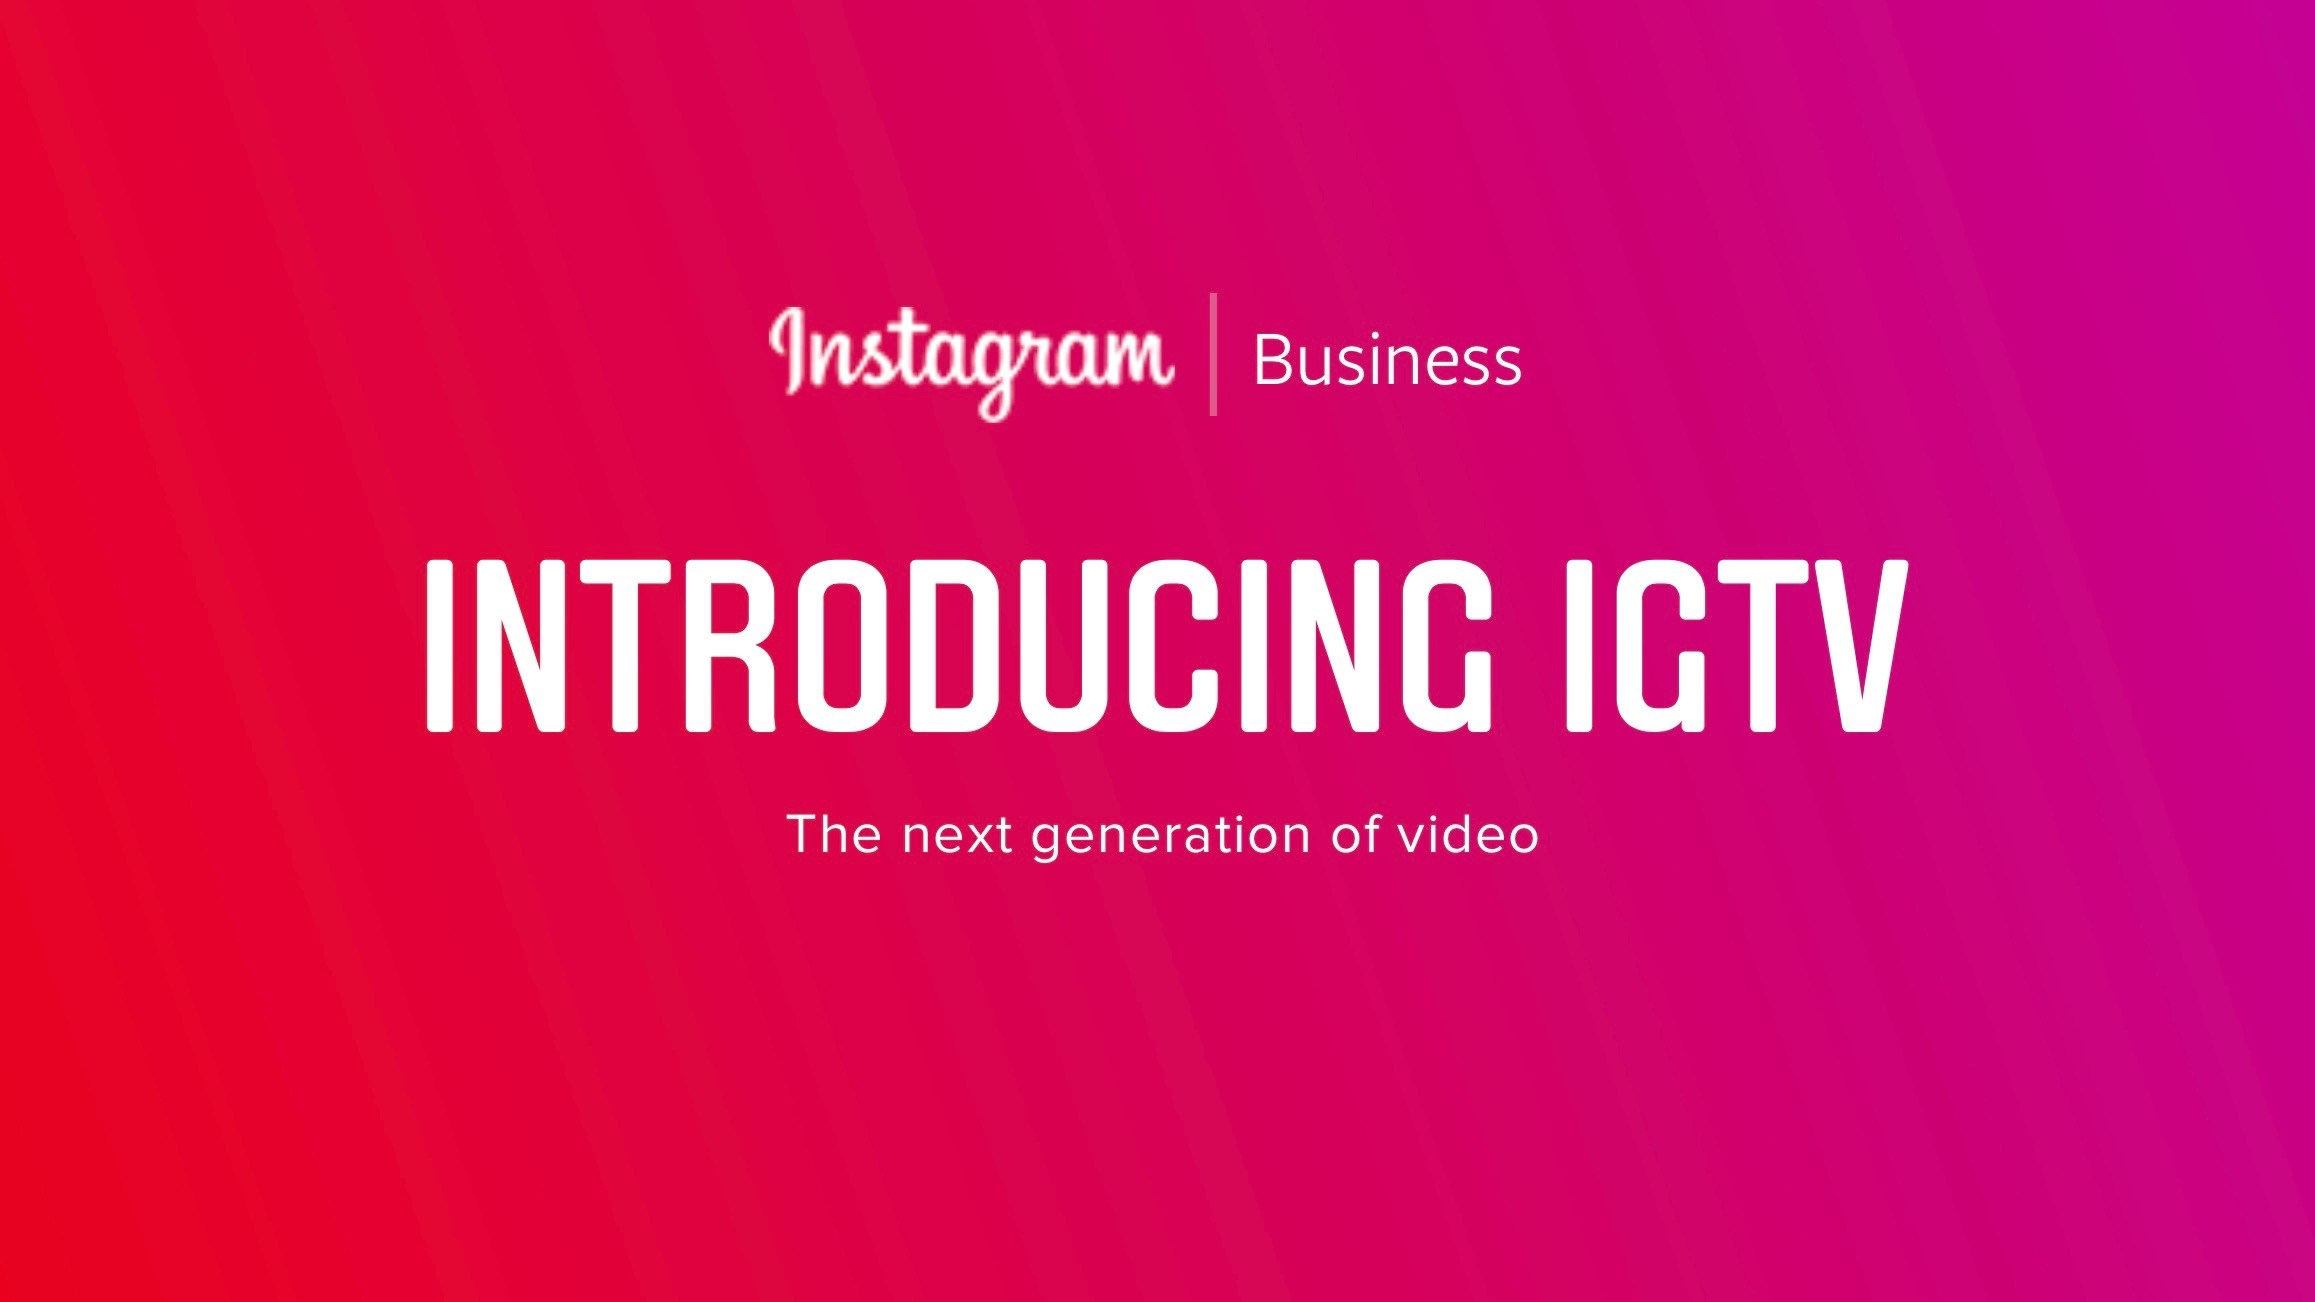 Instagram's business blog outed details of IGTV